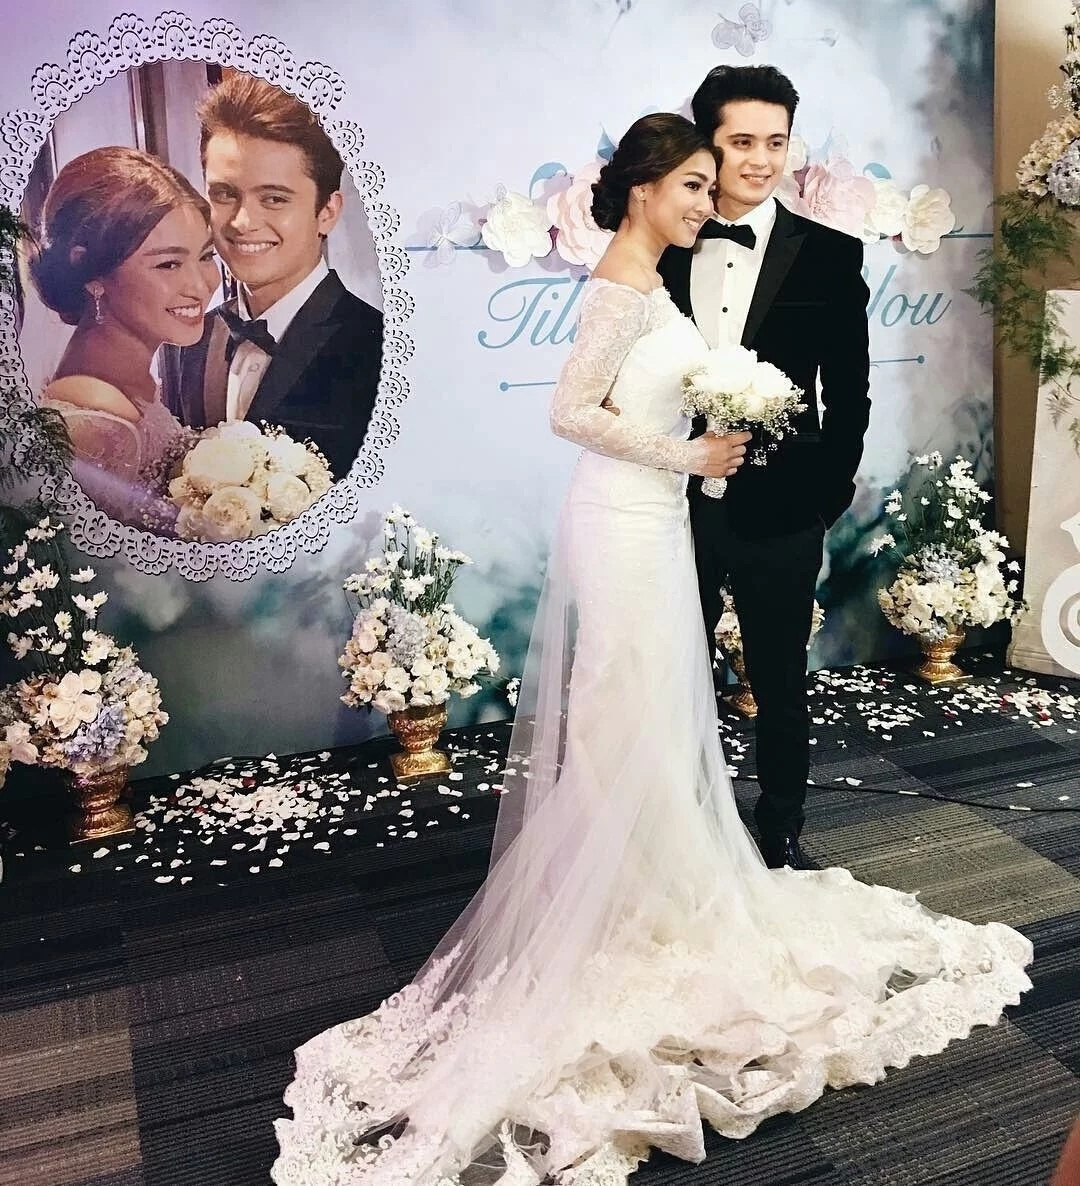 James Reid: 'I'm more in love with her'